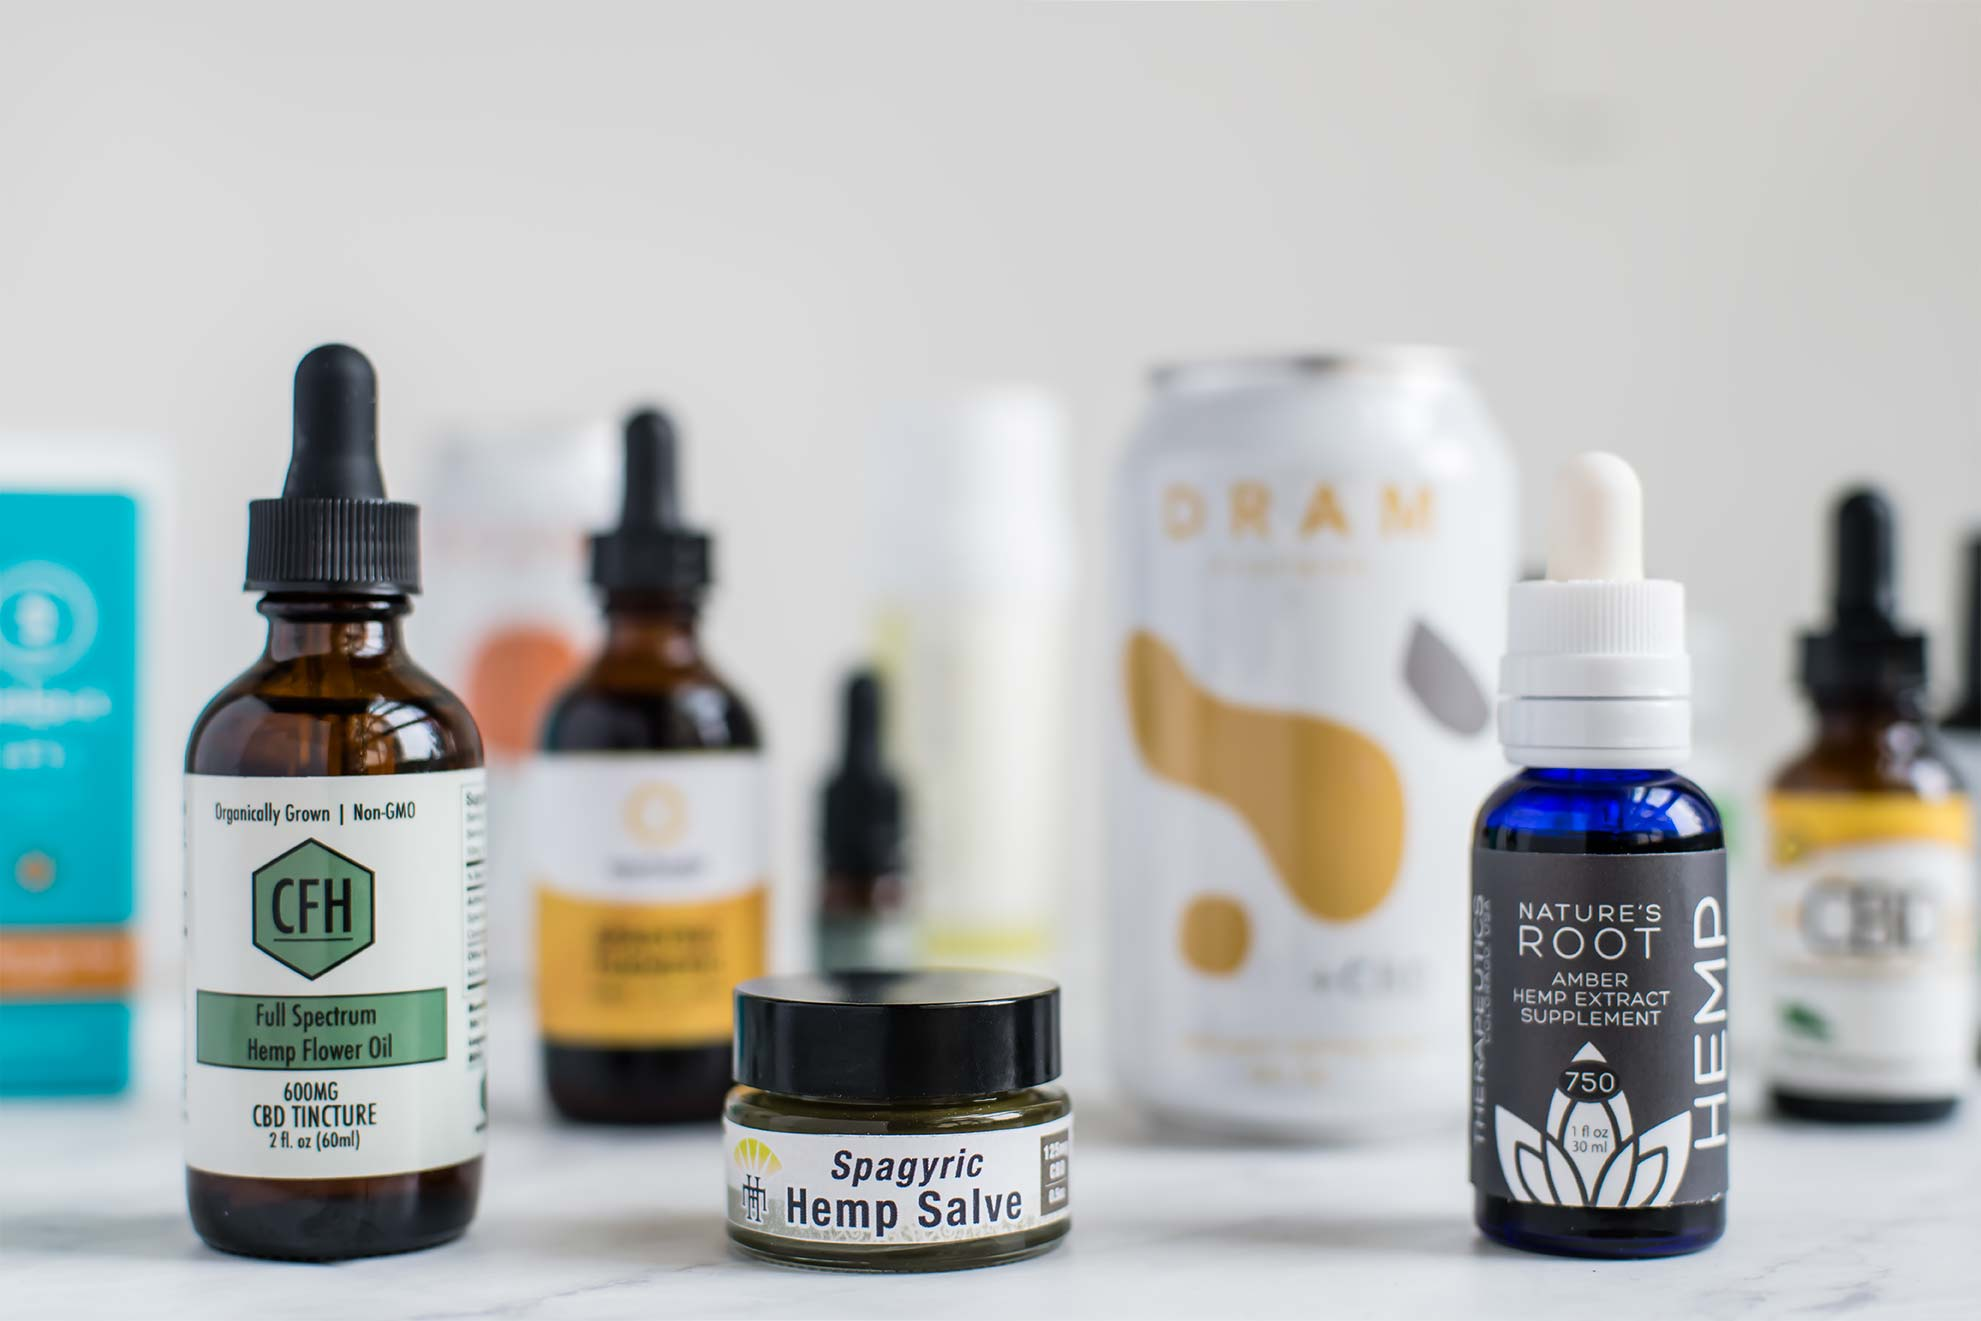 Few Important Things You Need To Know About Cbd Products